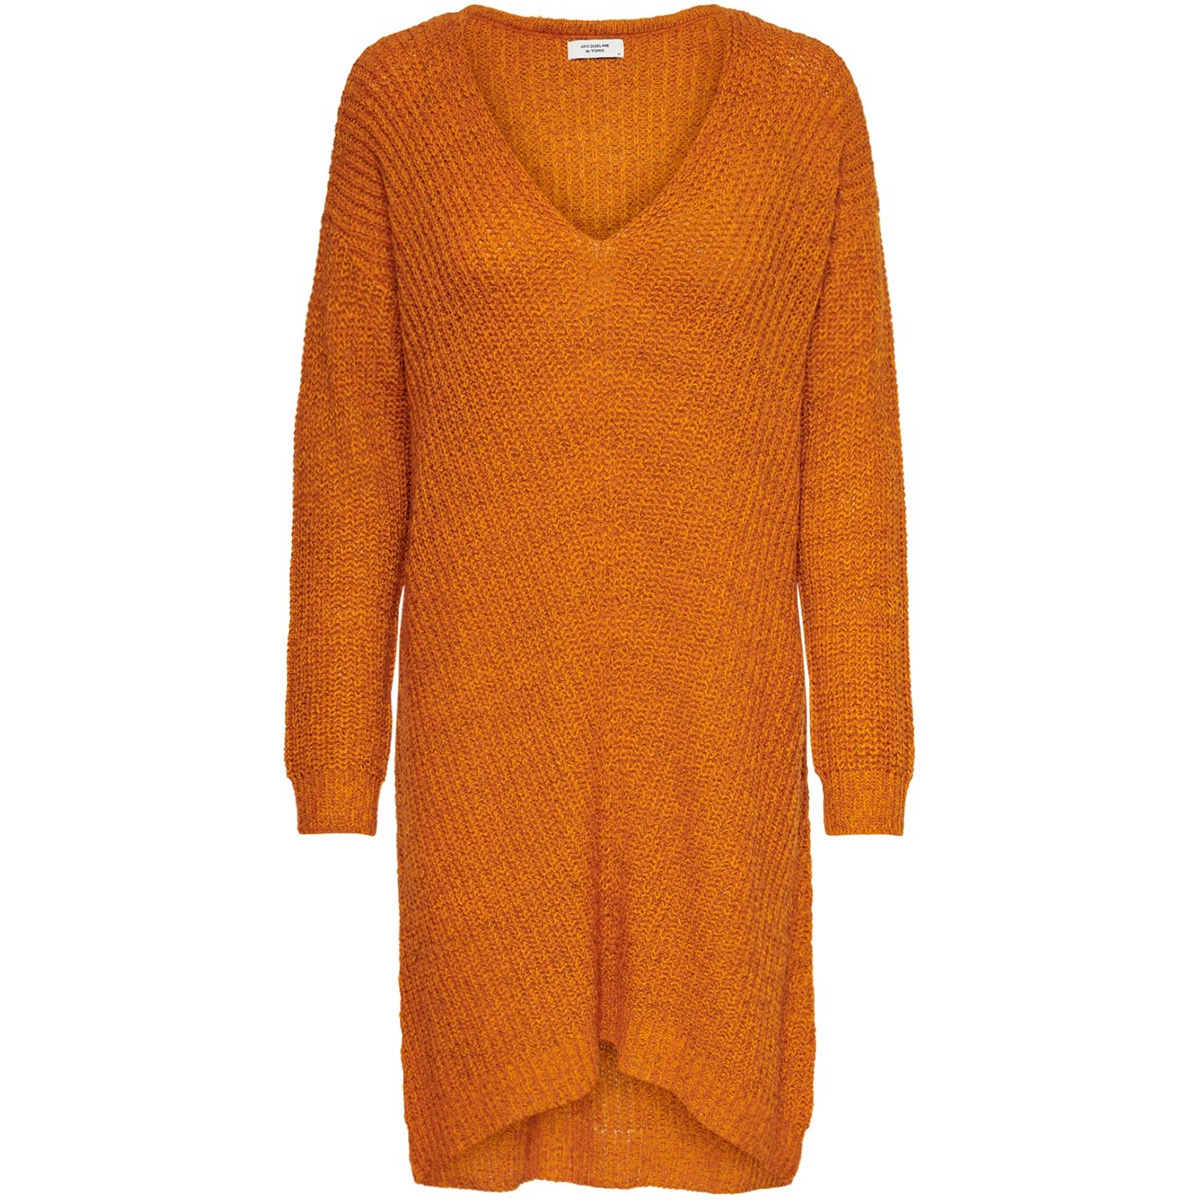 jdytammy l/s v-neck dress knt 15184126 jacqueline de yong jurk autumn maple/melange